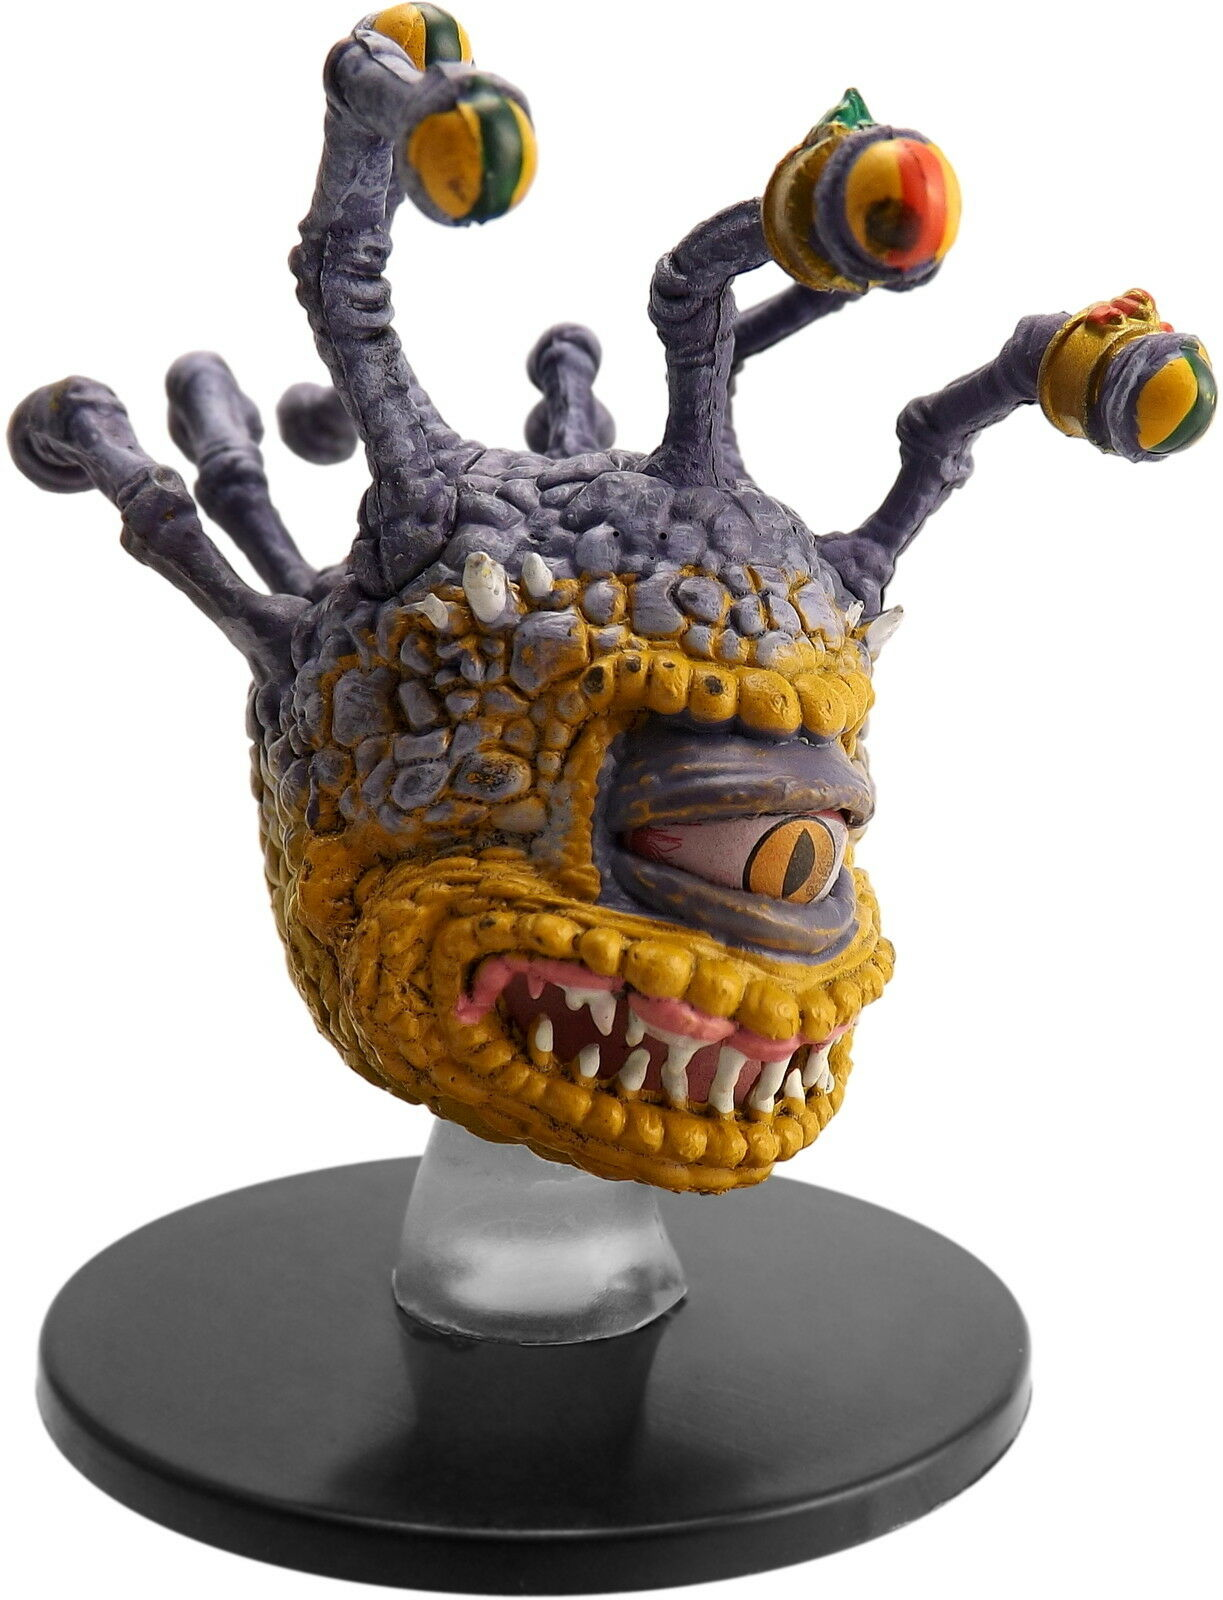 D&D mini XANATHAR (Beholder) Waterdeep Dungeons & Dragons Pathfinder Miniature